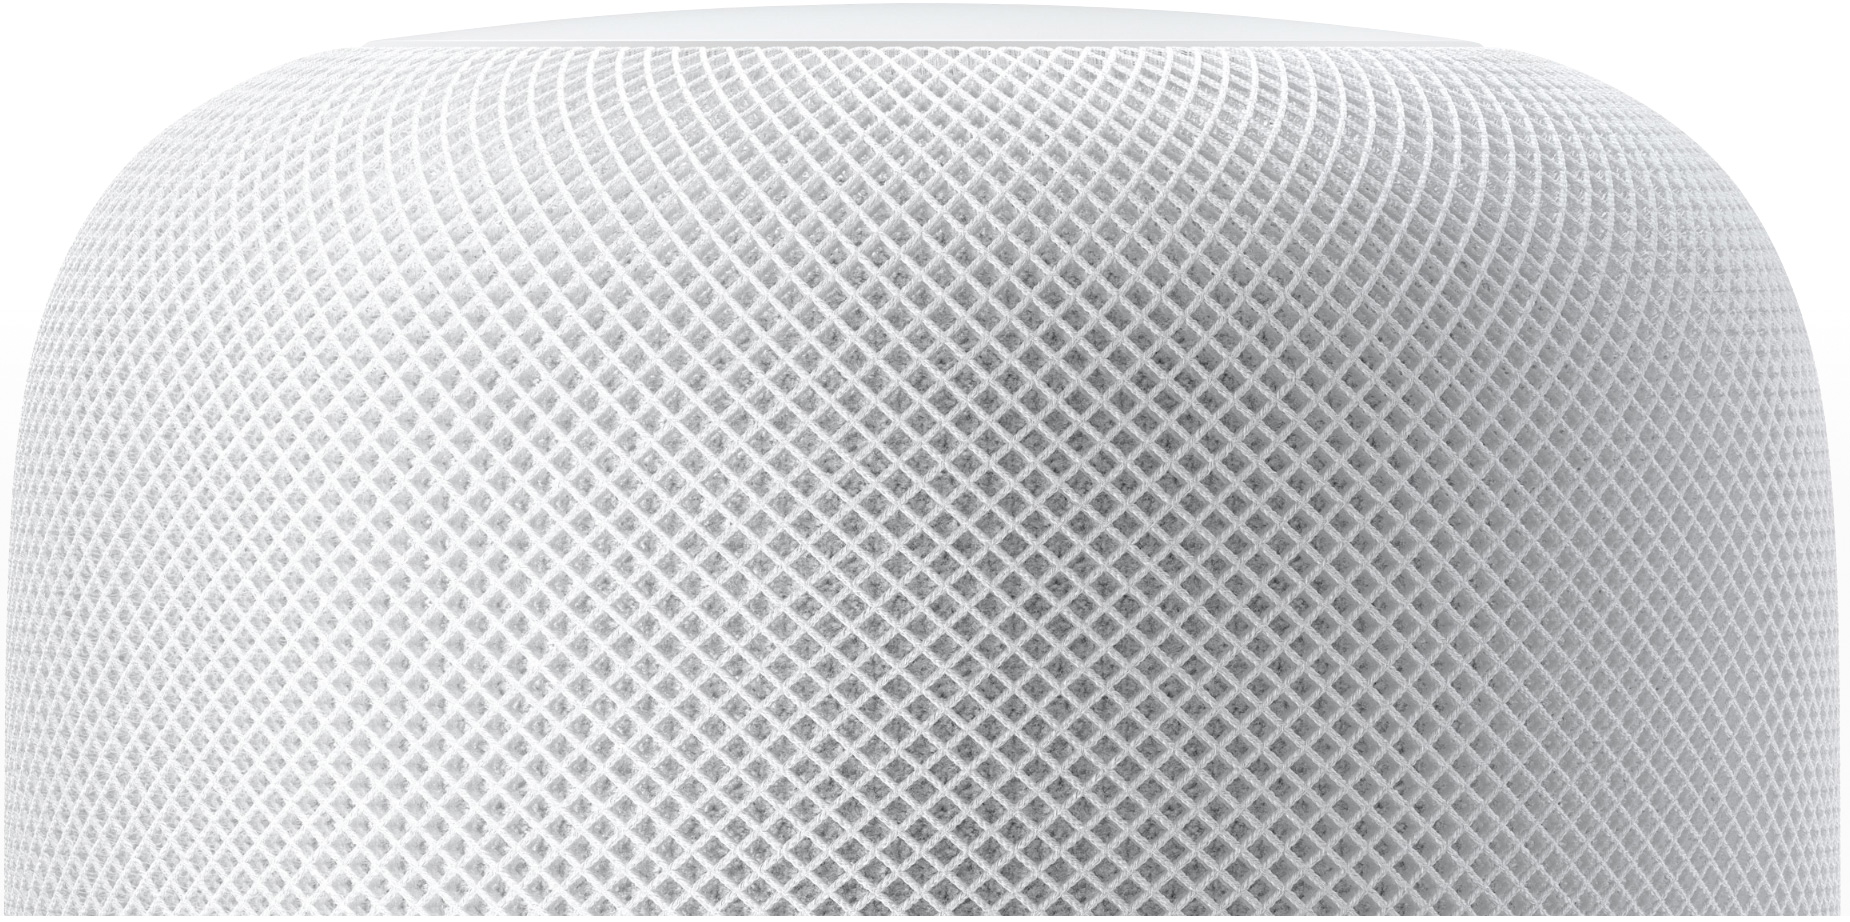 HomePod en blanco